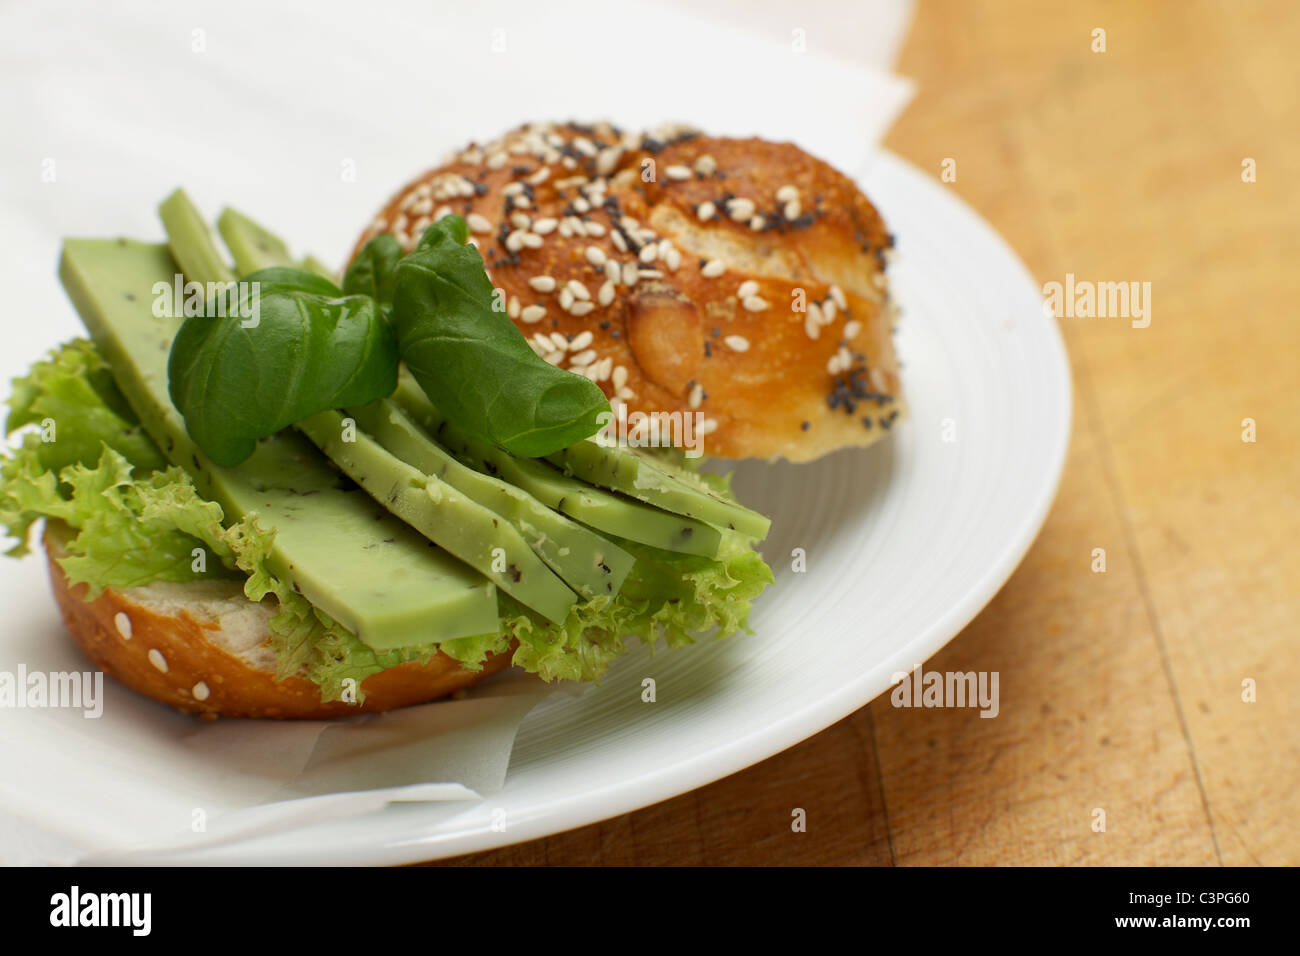 Cheese roll sandwich with basil, pest and salad on plate - Stock Image